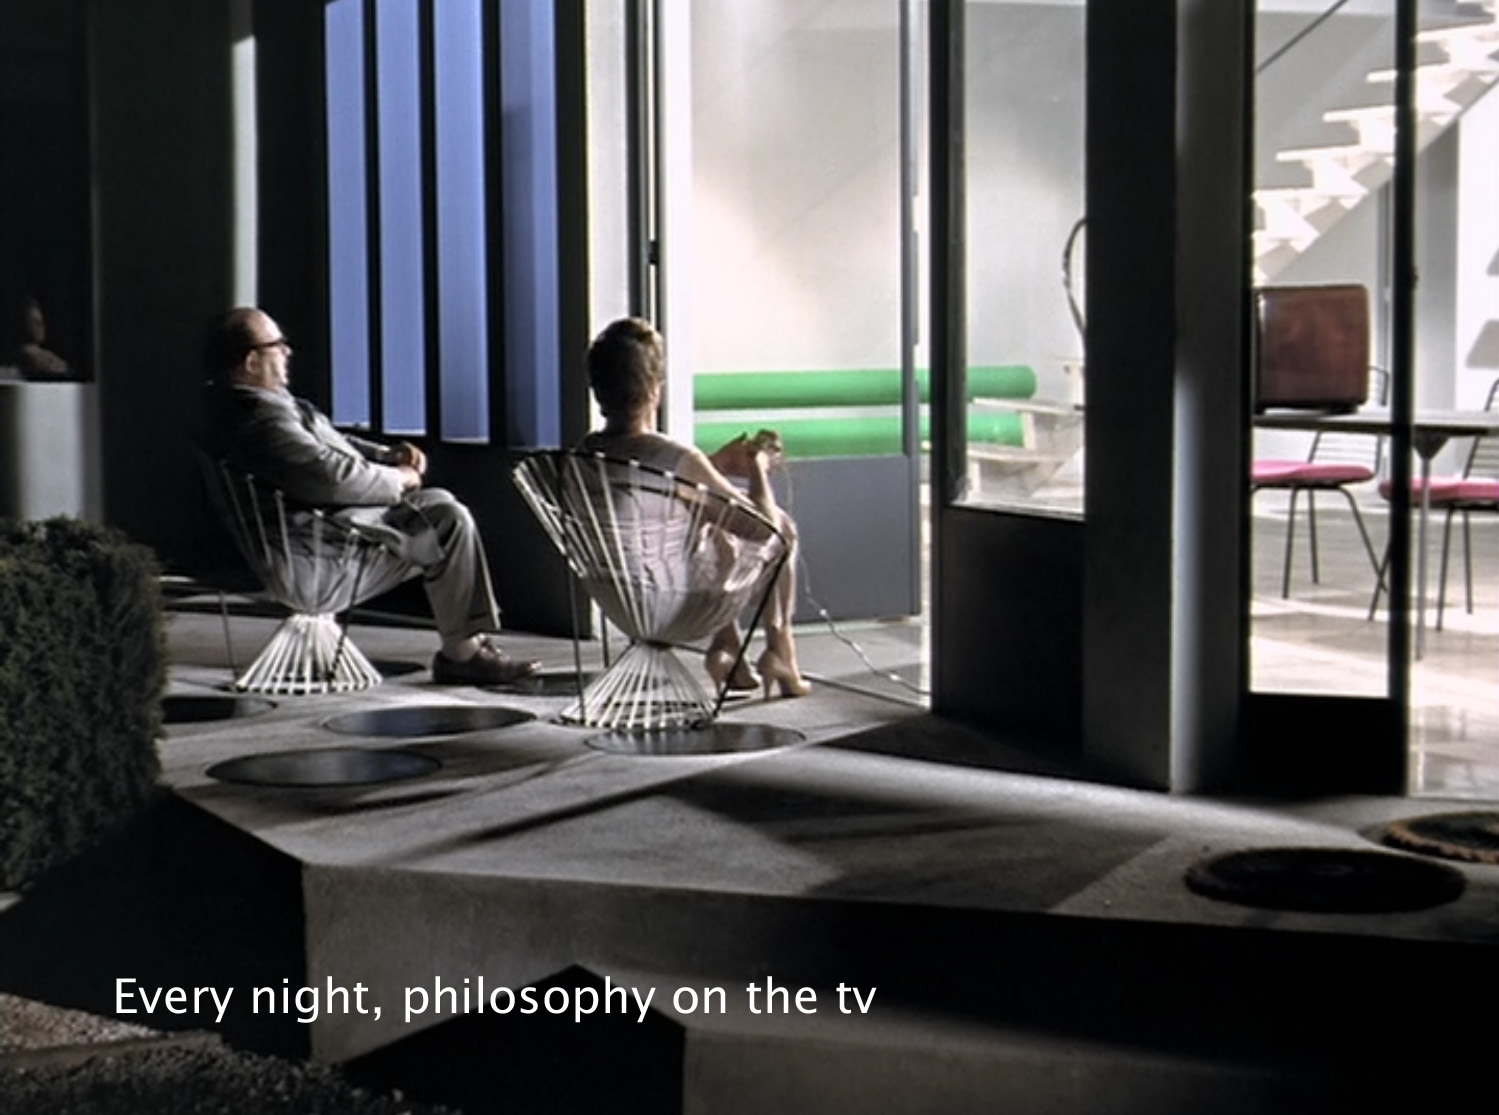 Every night, philosophy on the tv